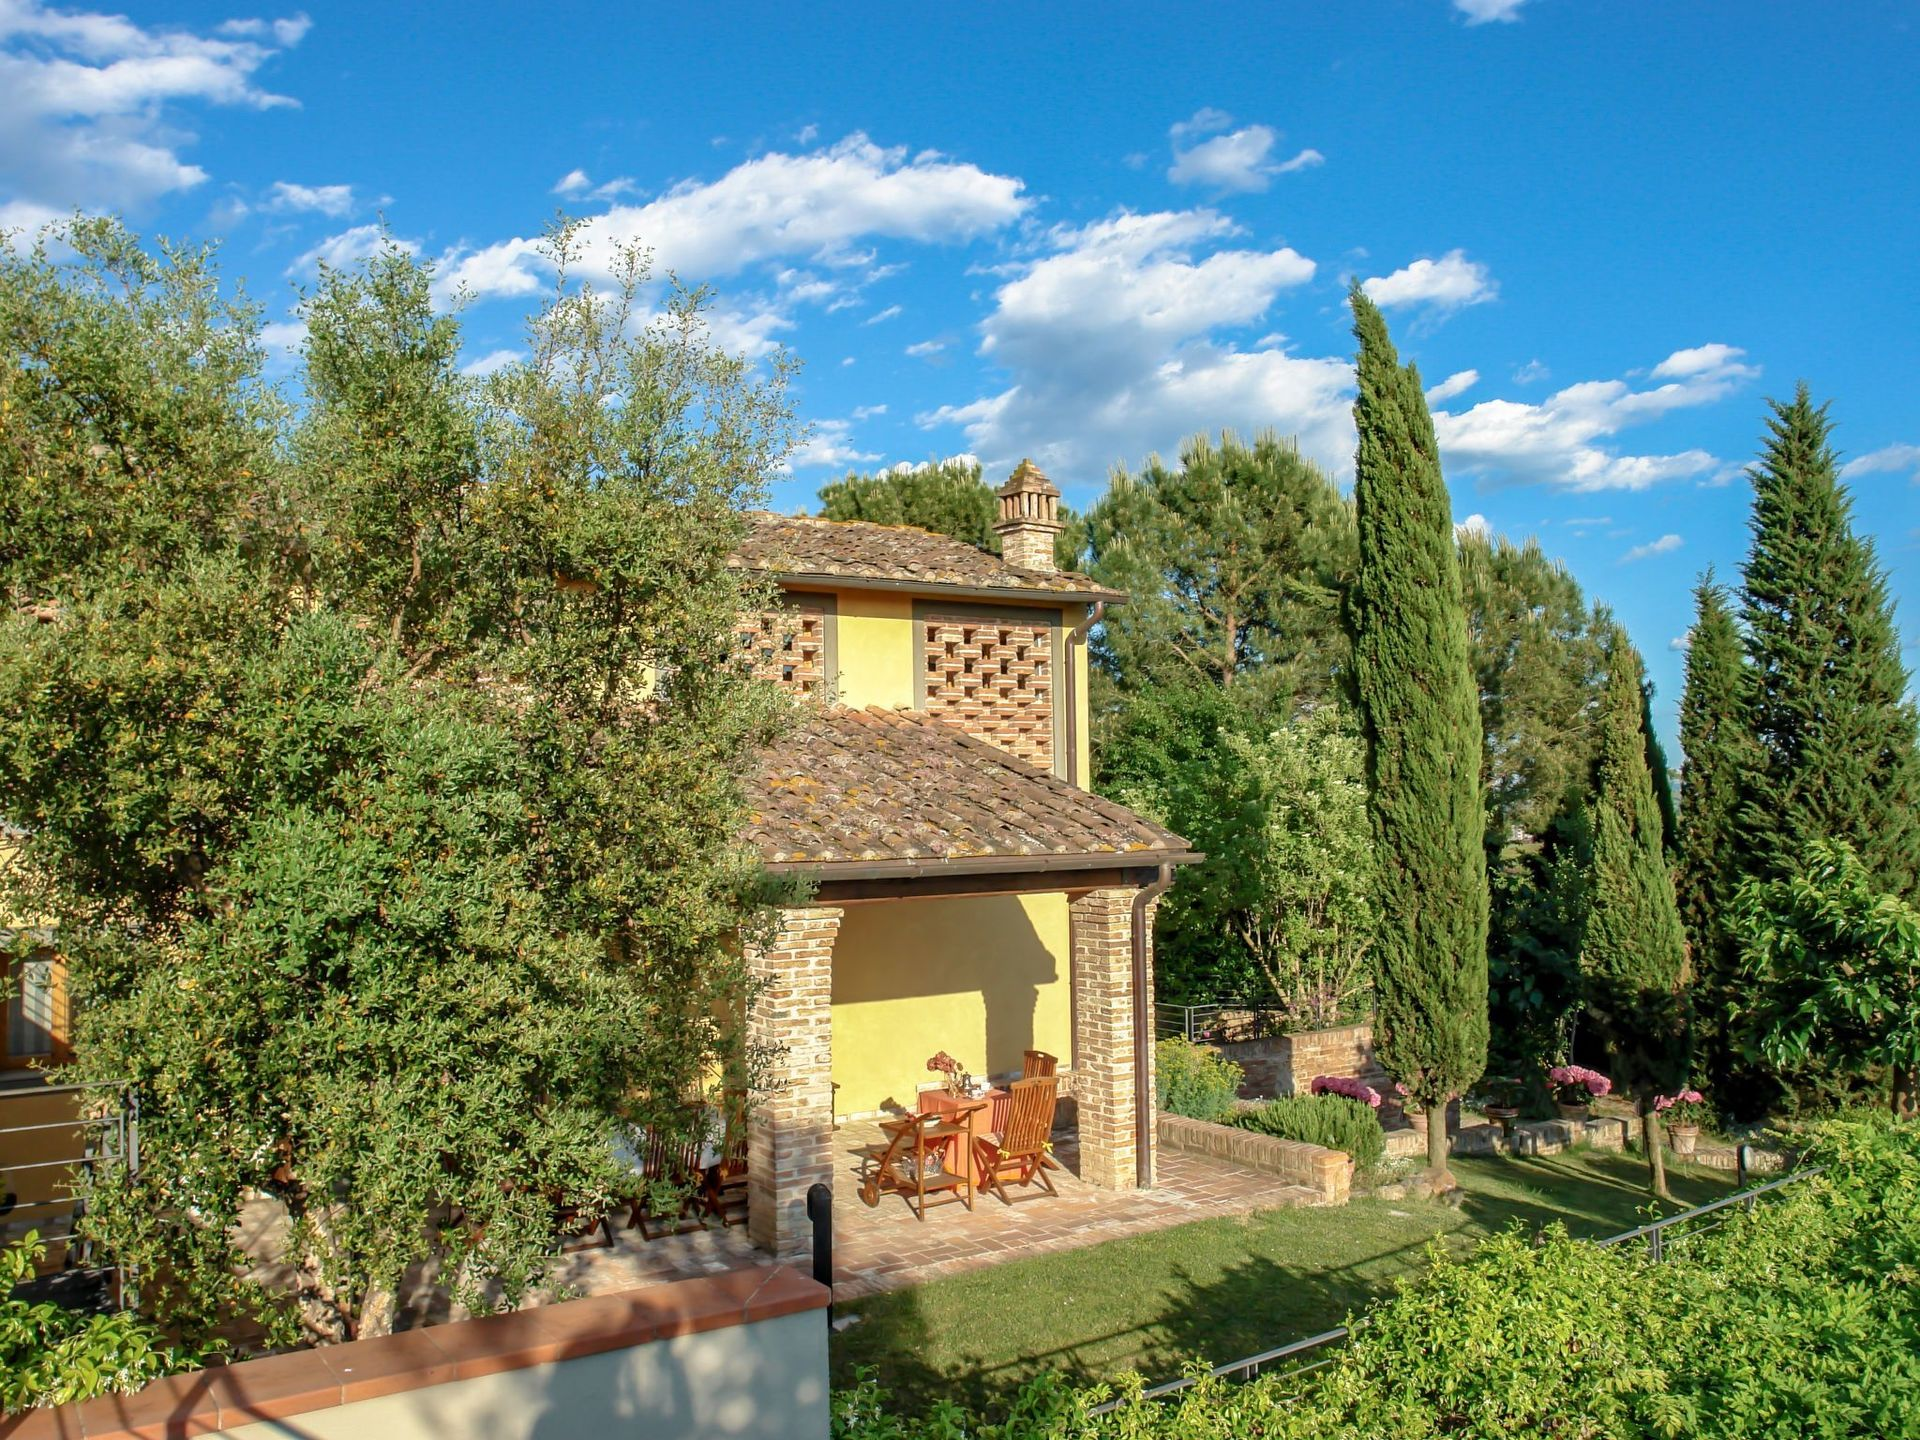 Beauty At Home Castelfiorentino tassinaia: villa that sleeps 10 people in 4 bedrooms